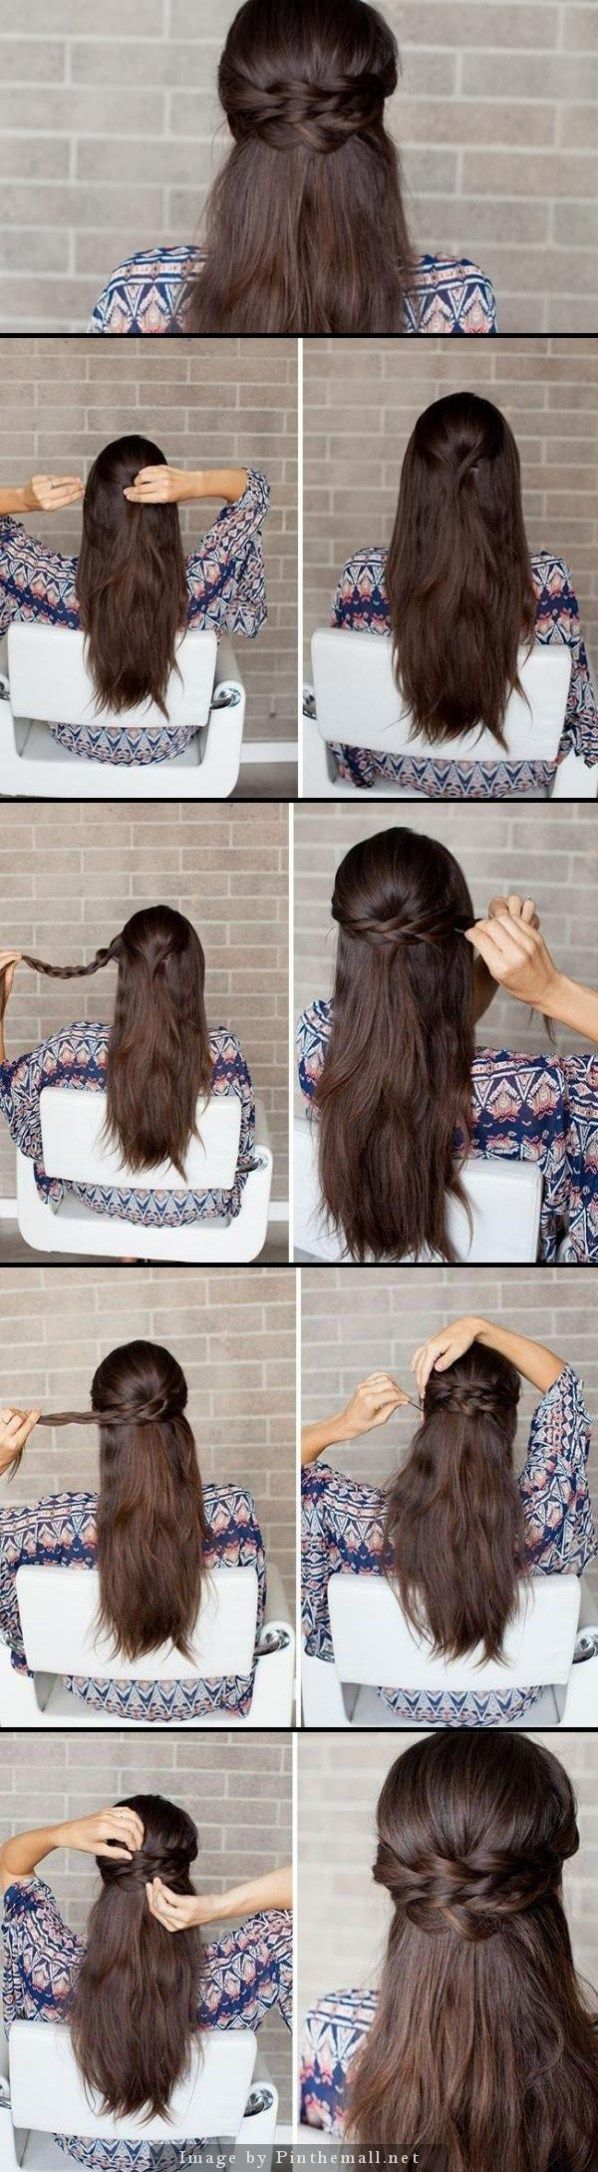 Fabulous half up half down hairstyles short hairstyles pinterest